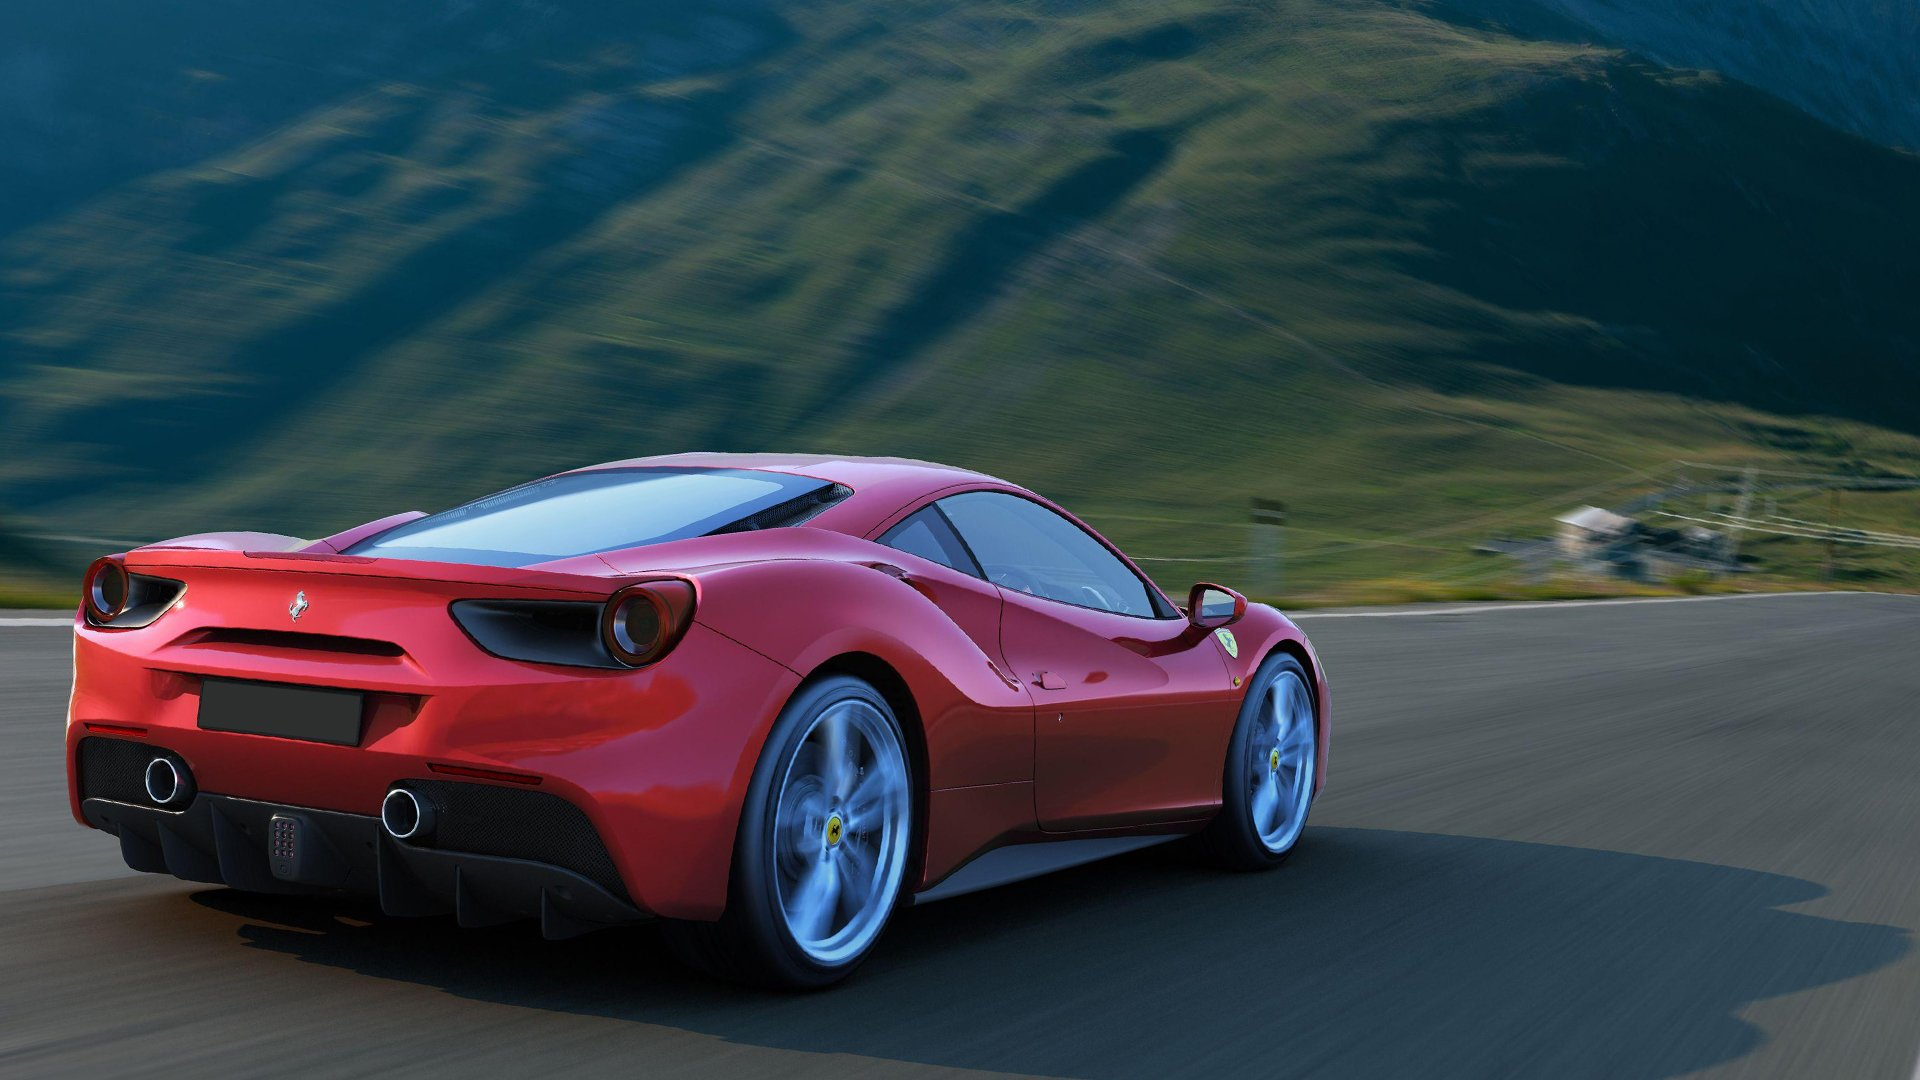 2019 Ferrari 488 Gtb Review 2019 Ferrari 488 Gtb Review Cars